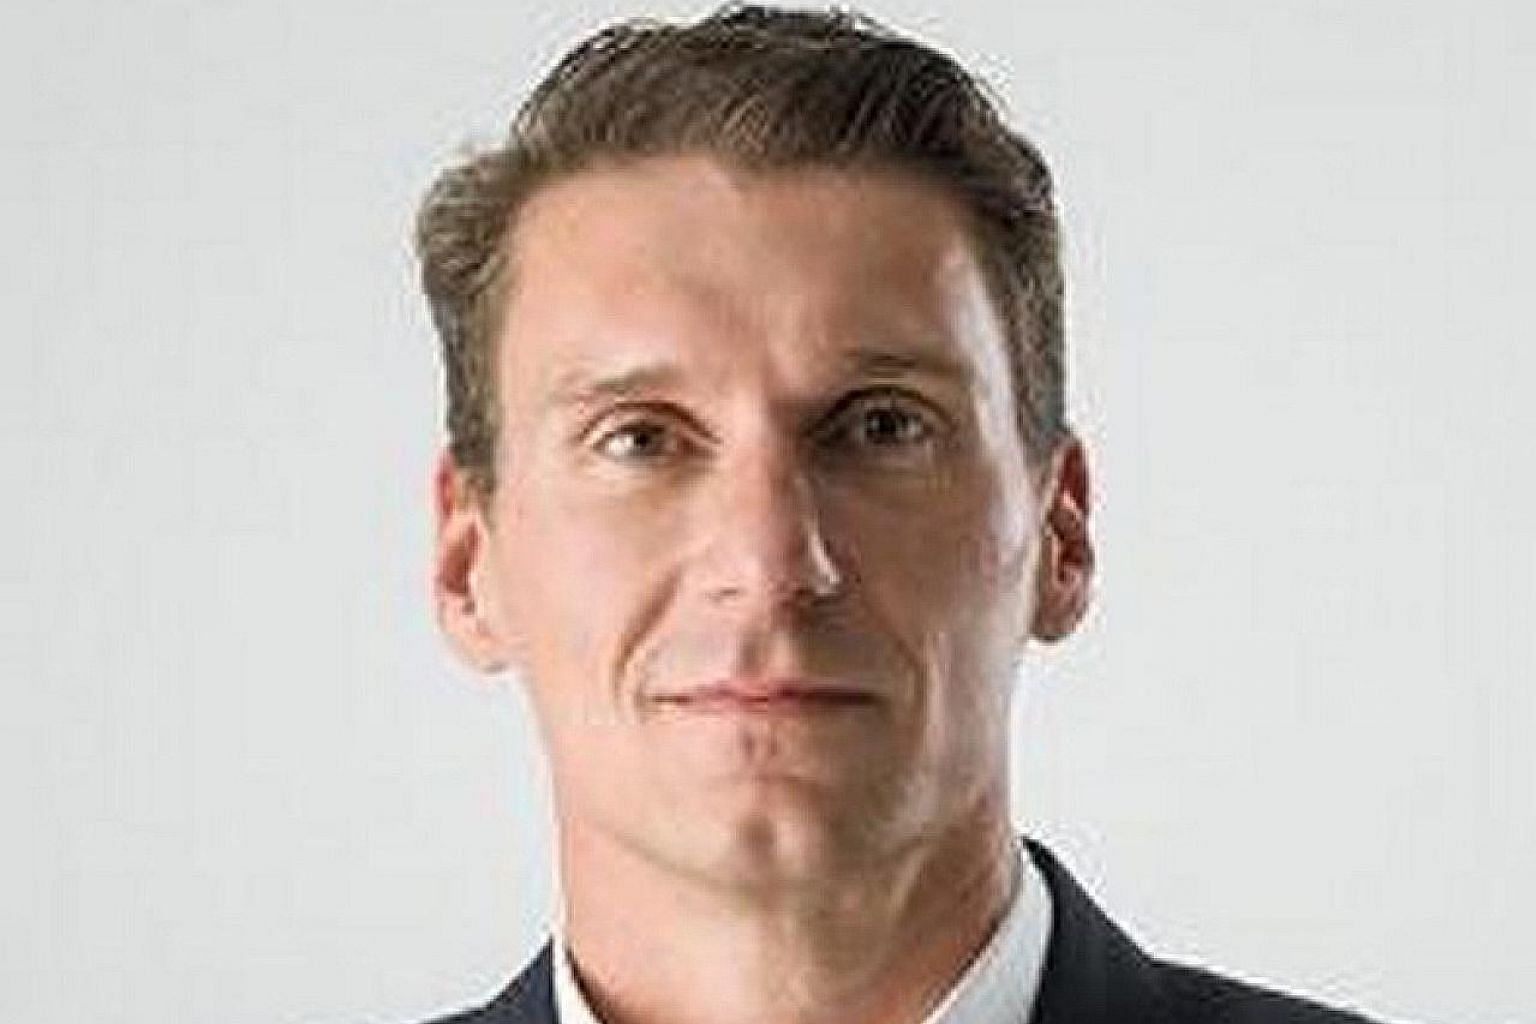 South Australian Senator Cory Bernardi has reportedly been emboldened by the rise of populist movements in Britain and the United States.